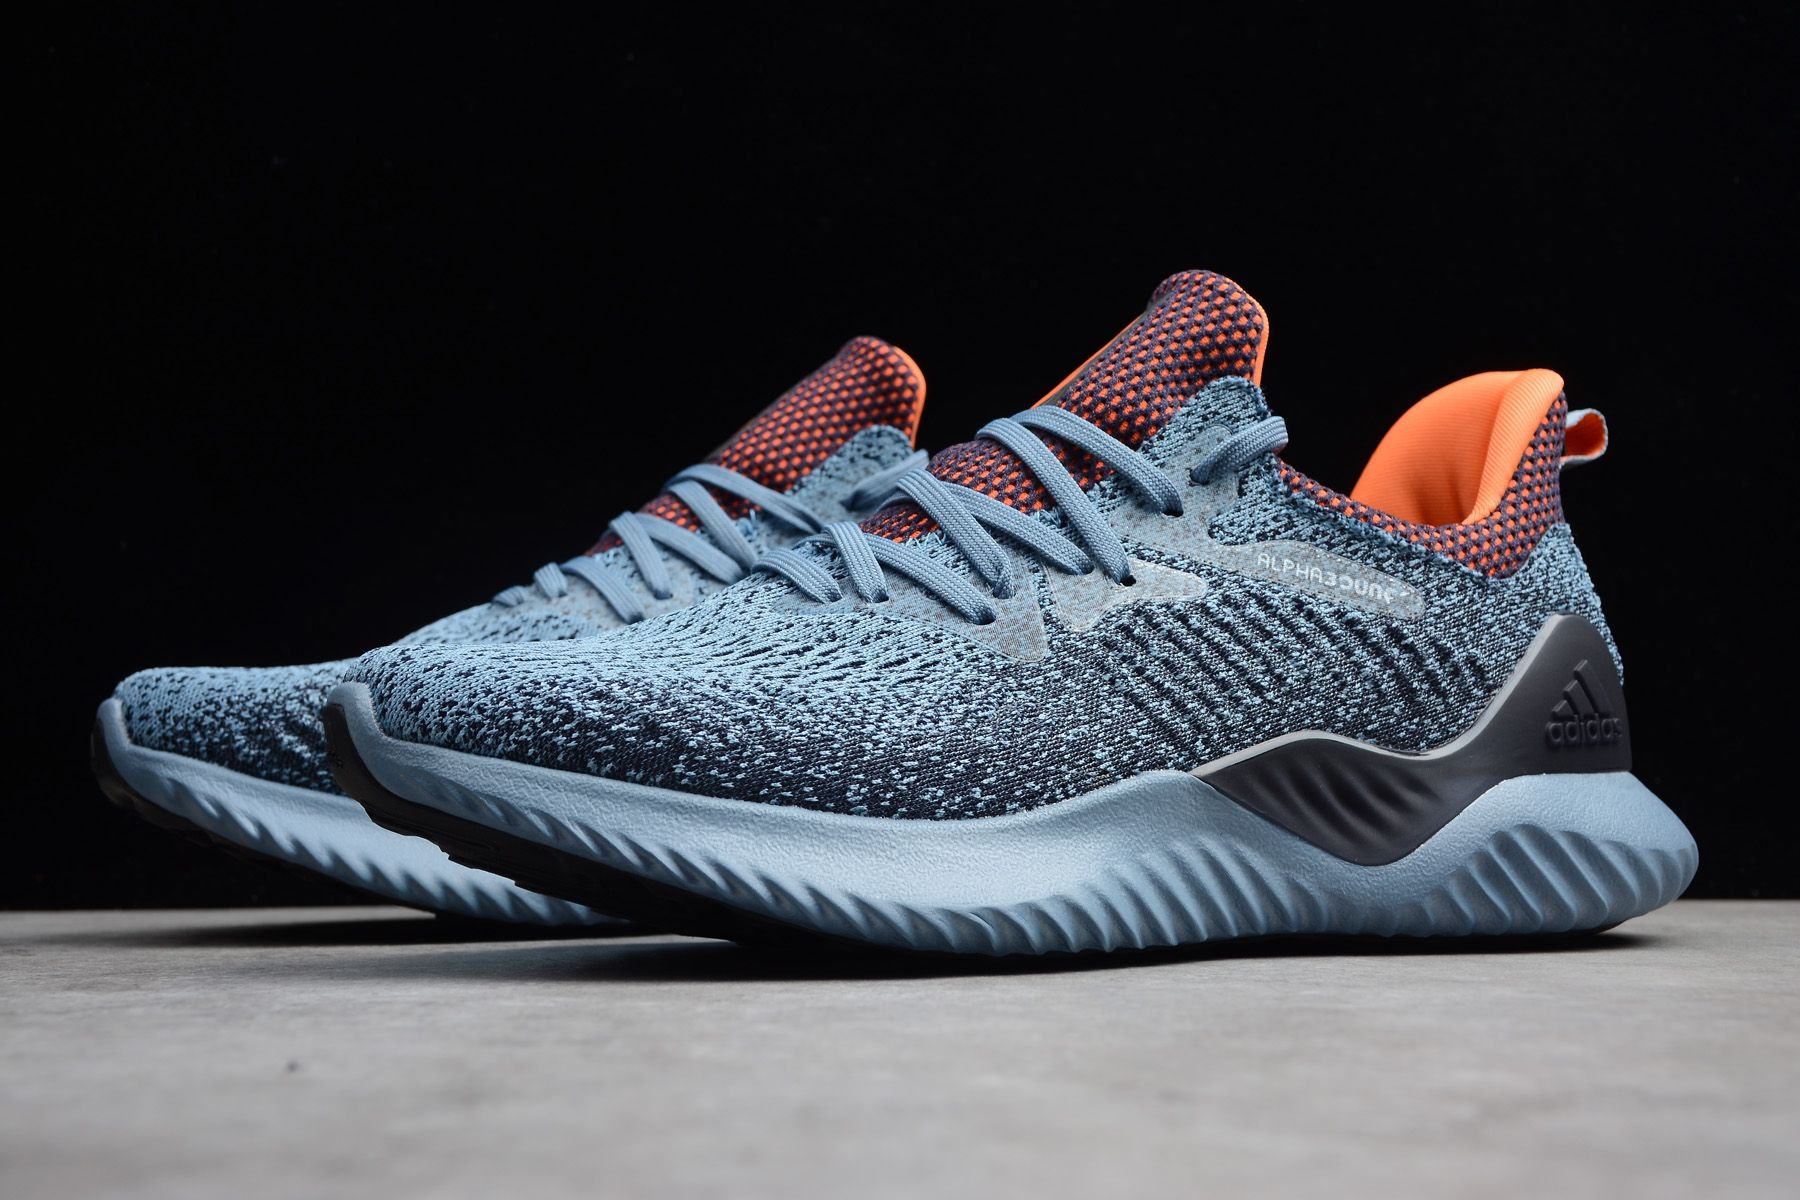 new arrival 4258d 73797 adidas Alphabounce Beyond Raw GreyHi-Res Orange-Legend Ink Shoes AQ0574